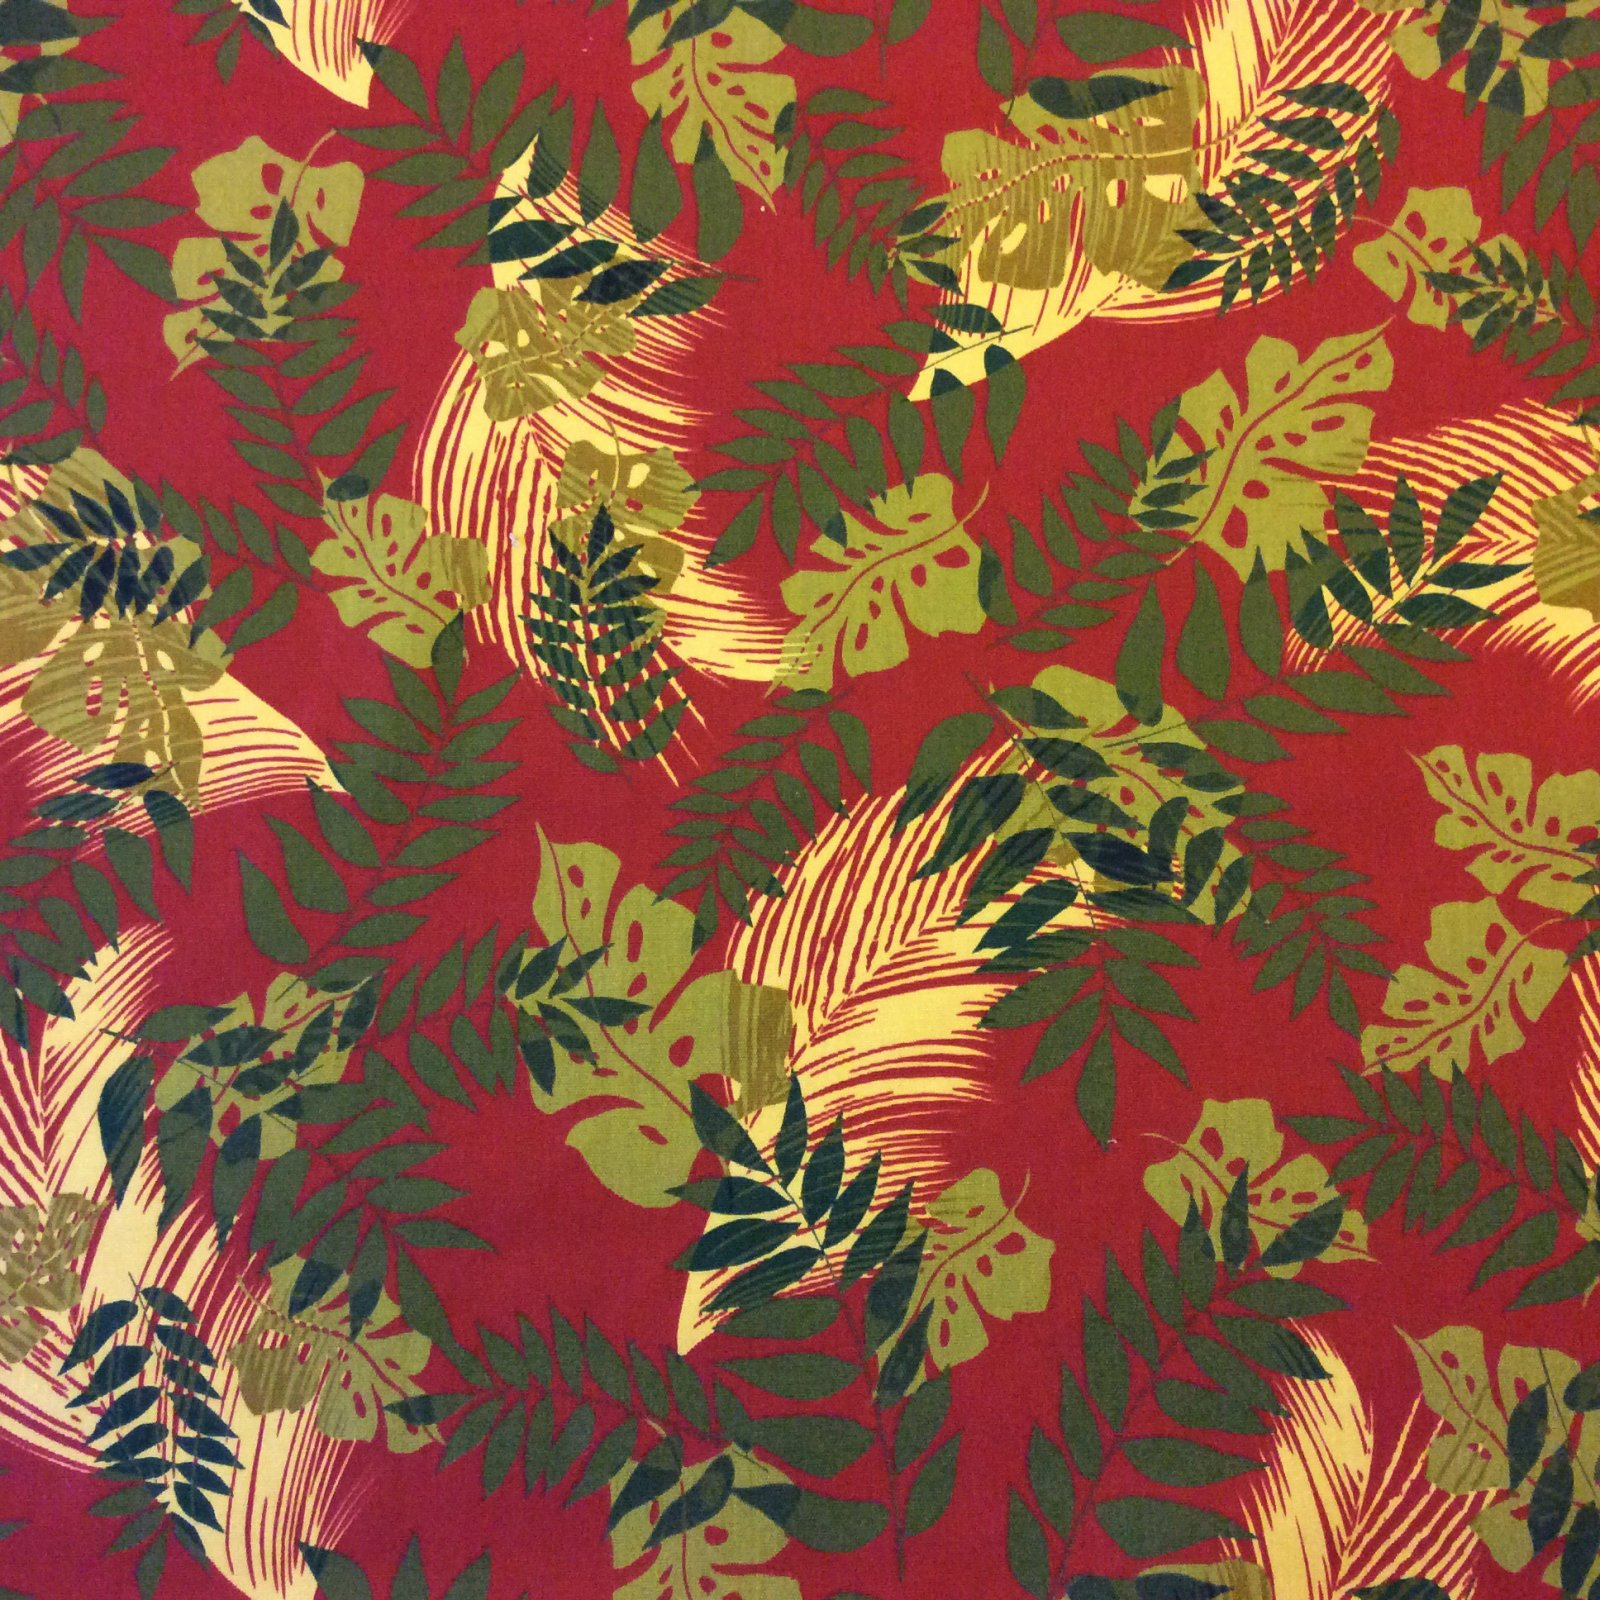 Palm Leaves Banana Leaf Neutral Tones Tropical Leaves Plants Wildlife Nature Outdoor fabric Famous Maker S94